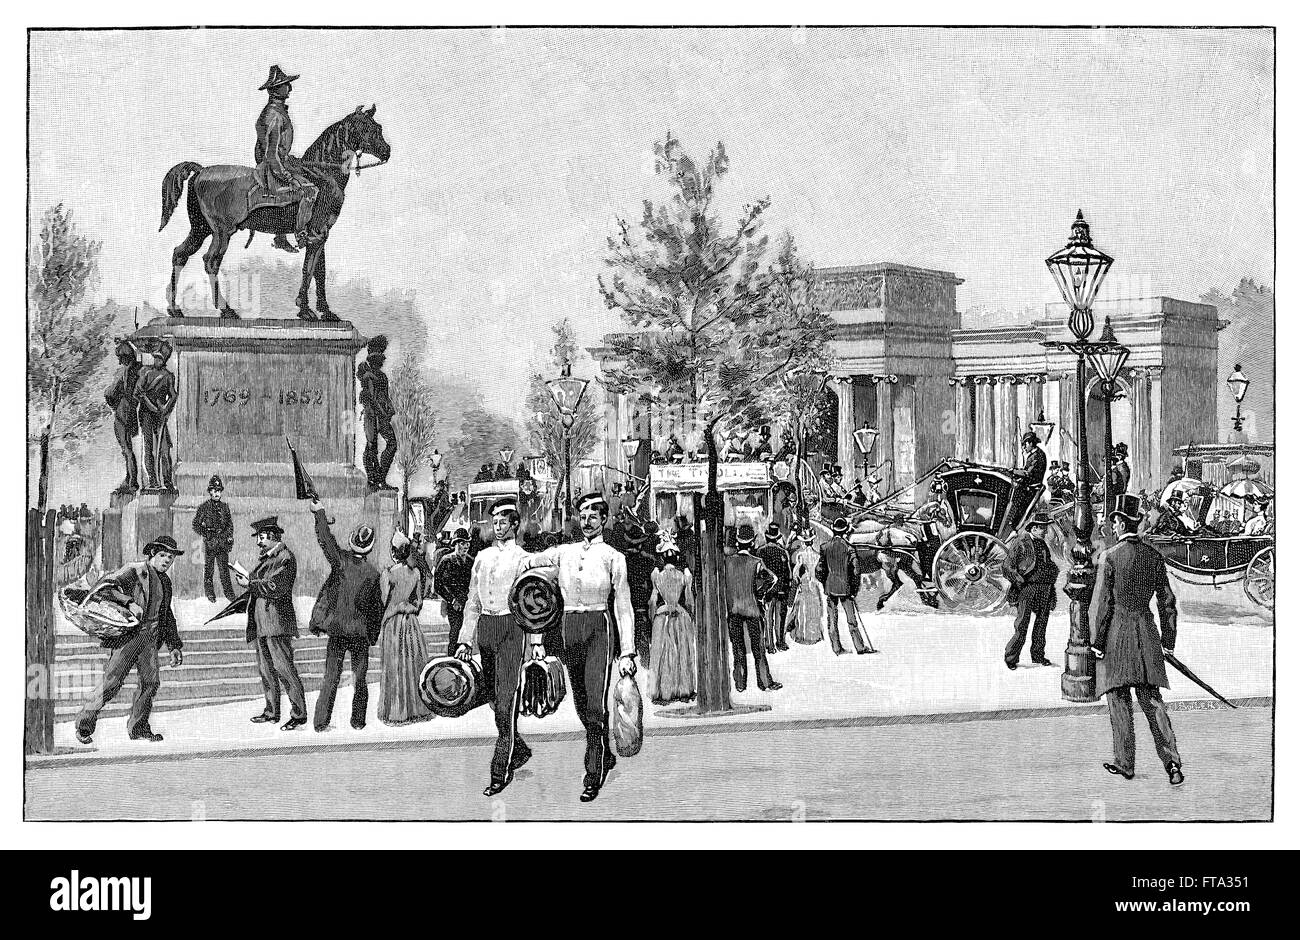 Black and white engraving of Hyde Park Corner, London, showing the Duke Of Wellington statue and Decimus Burton's - Stock Image